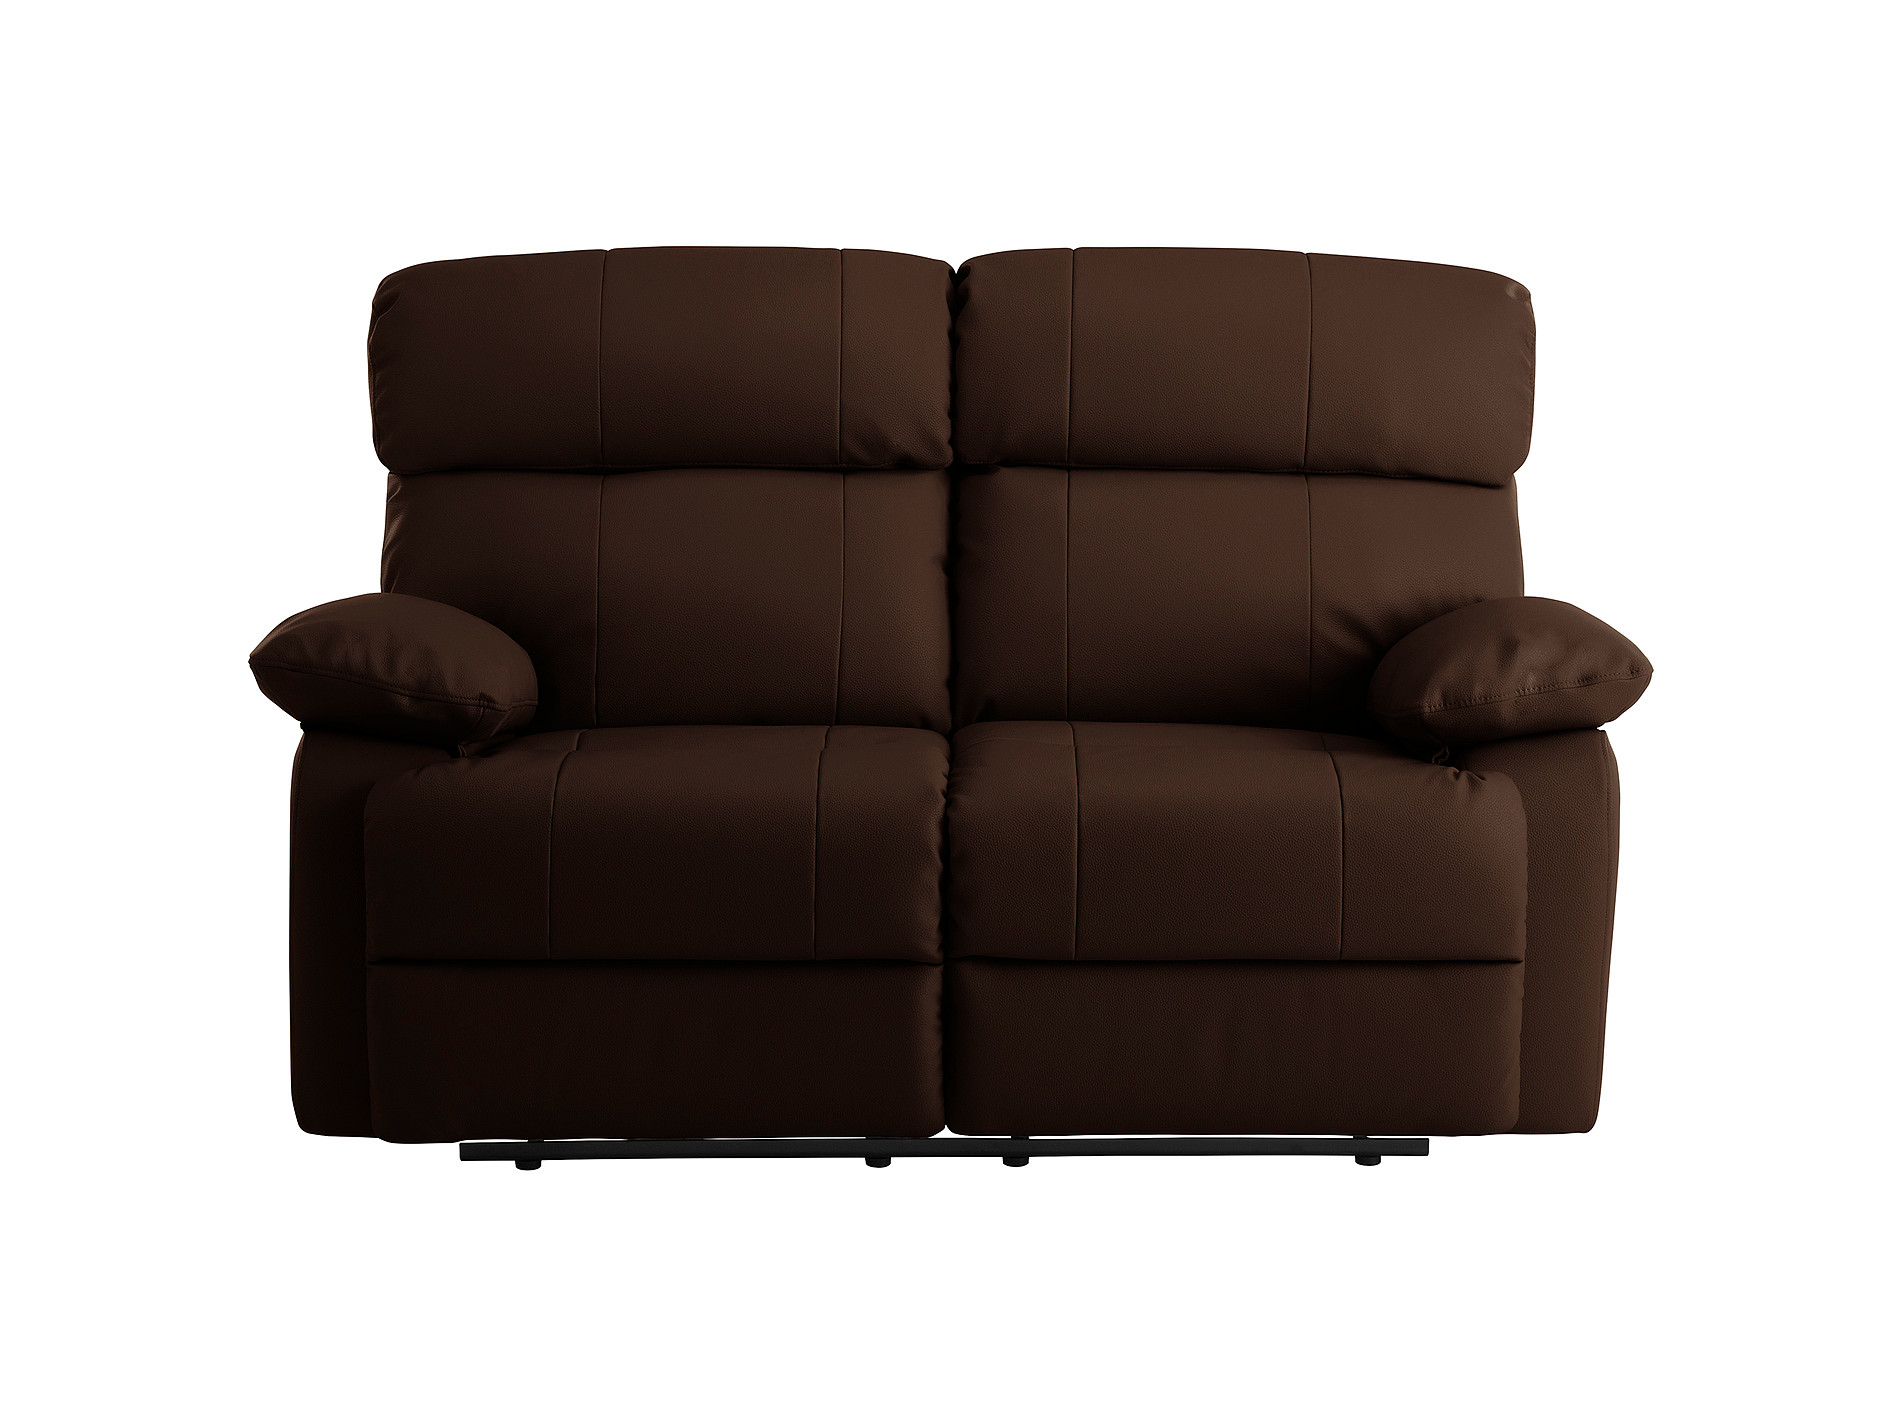 electric recliner leather sofas uk sofa steam cleaning abu dhabi quantity